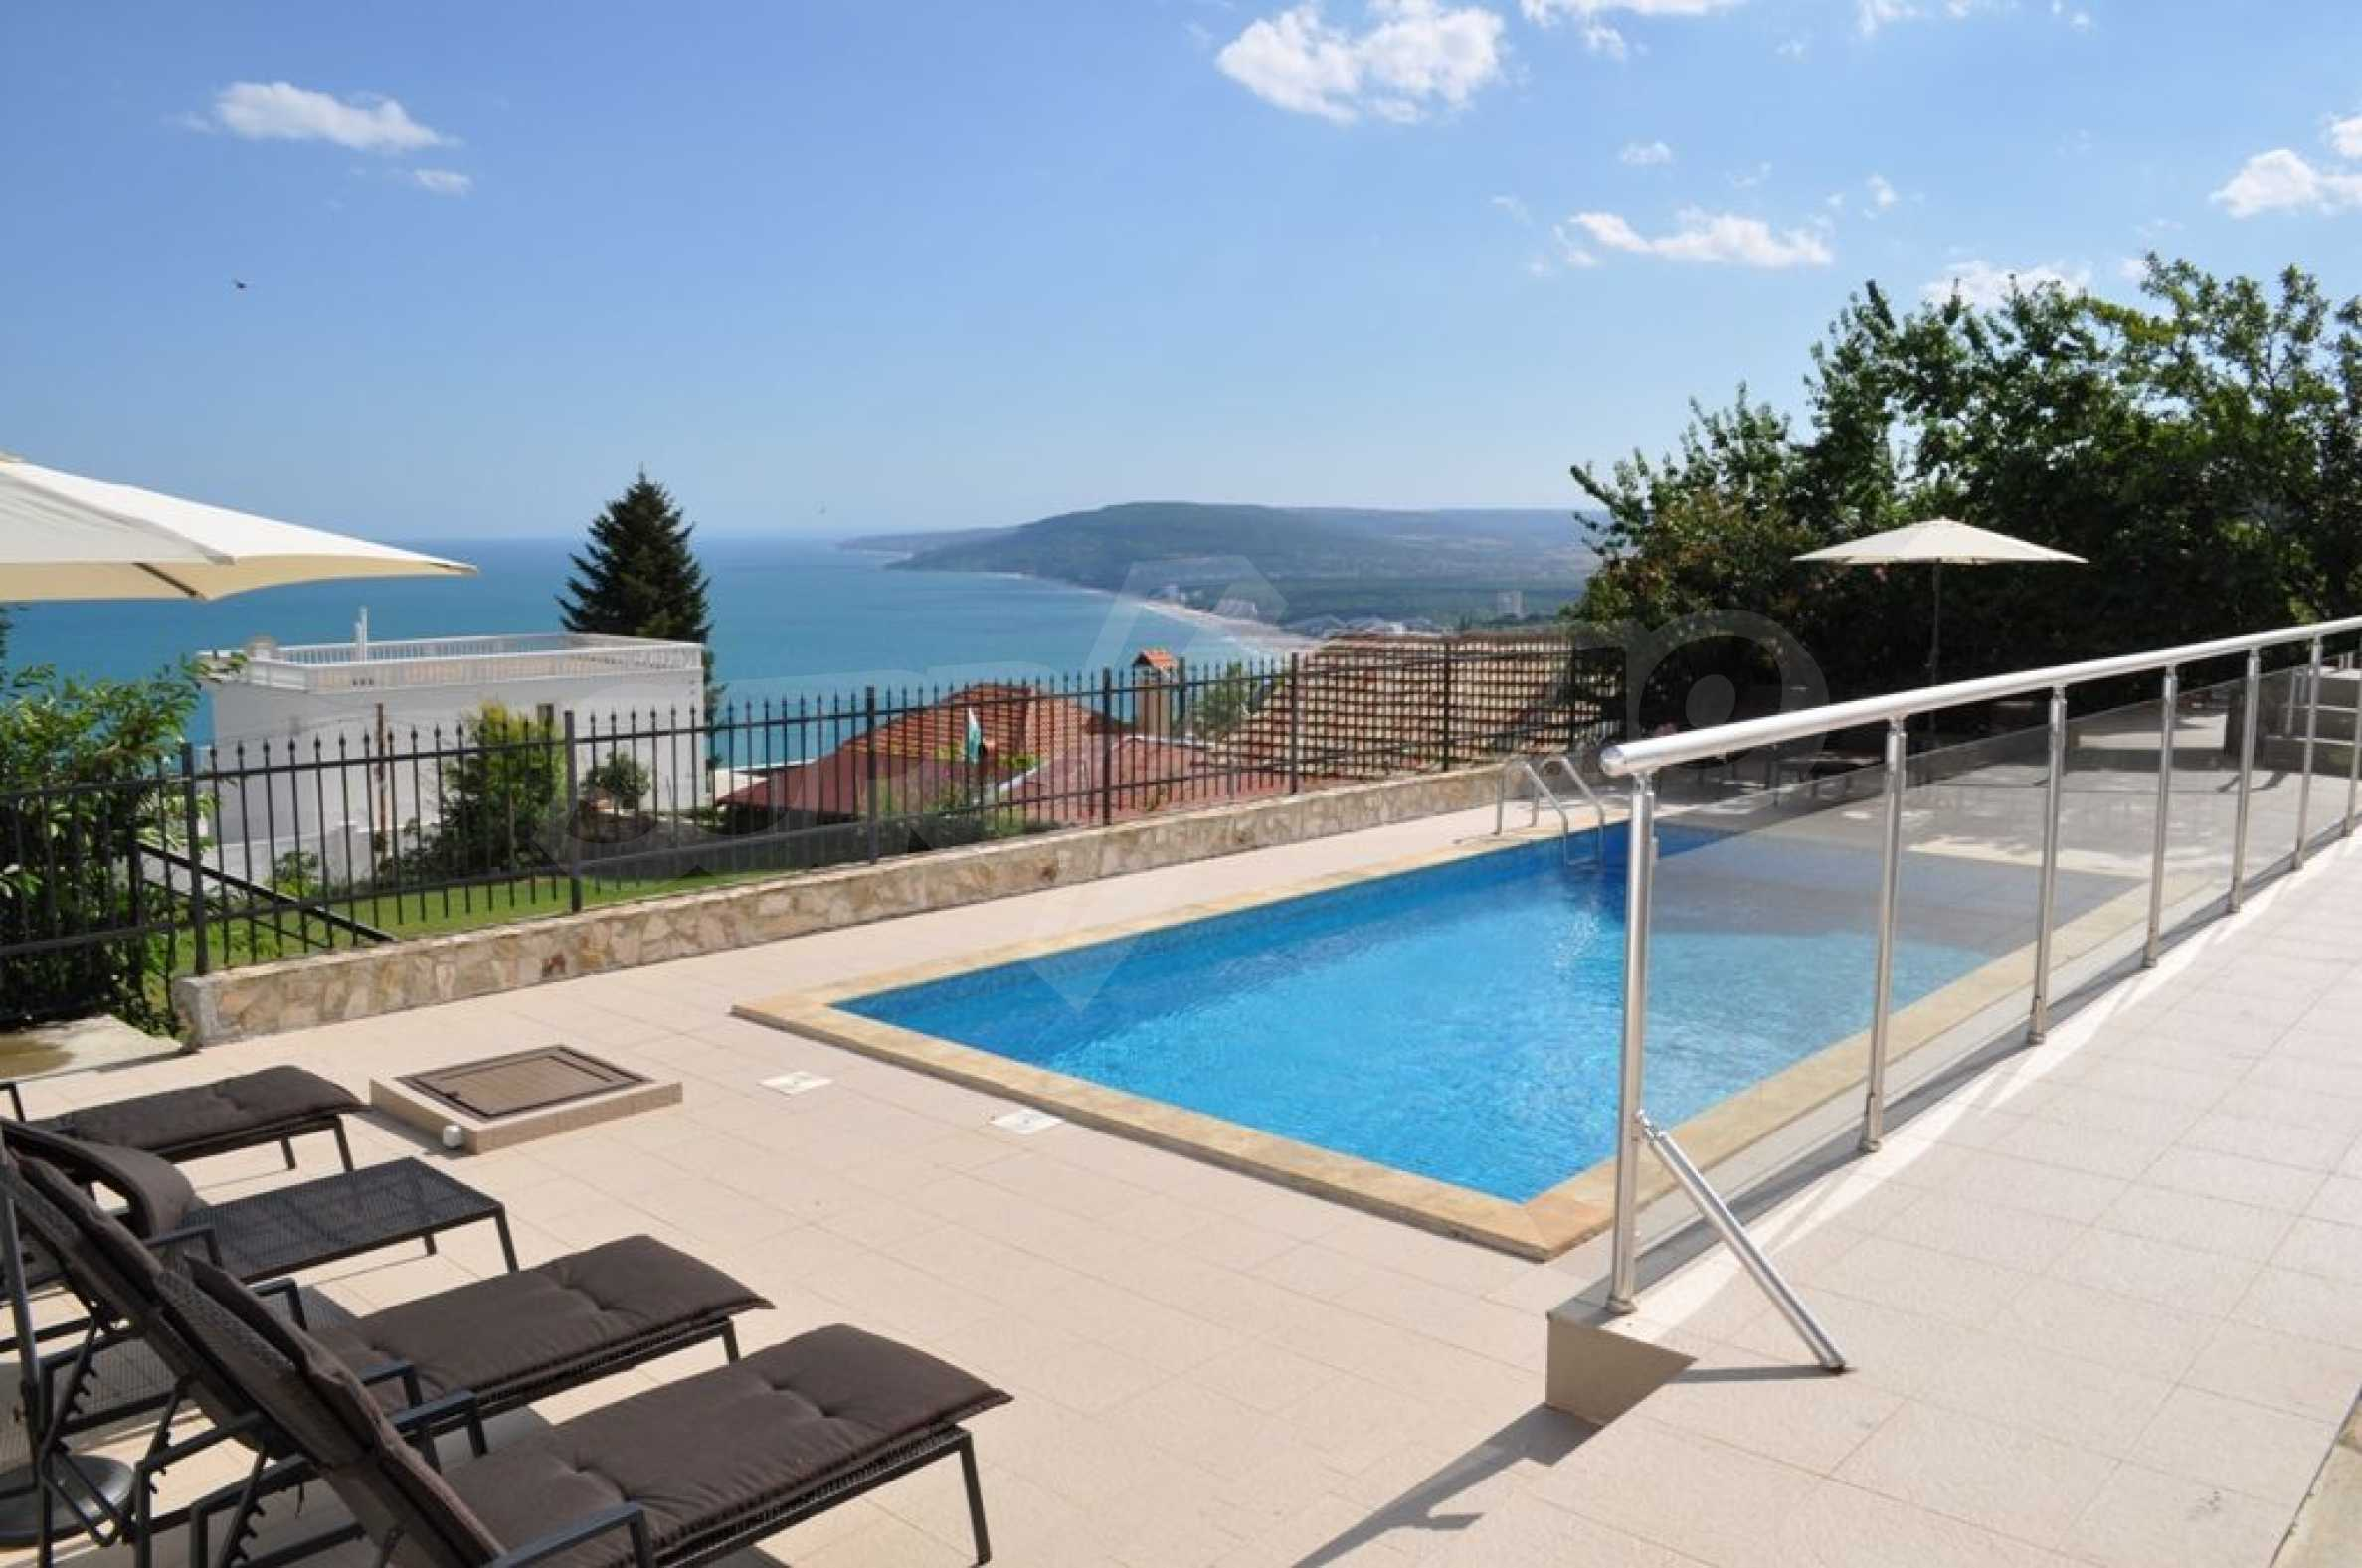 Luxury villa with 4 bedrooms for rent in Albena area  1